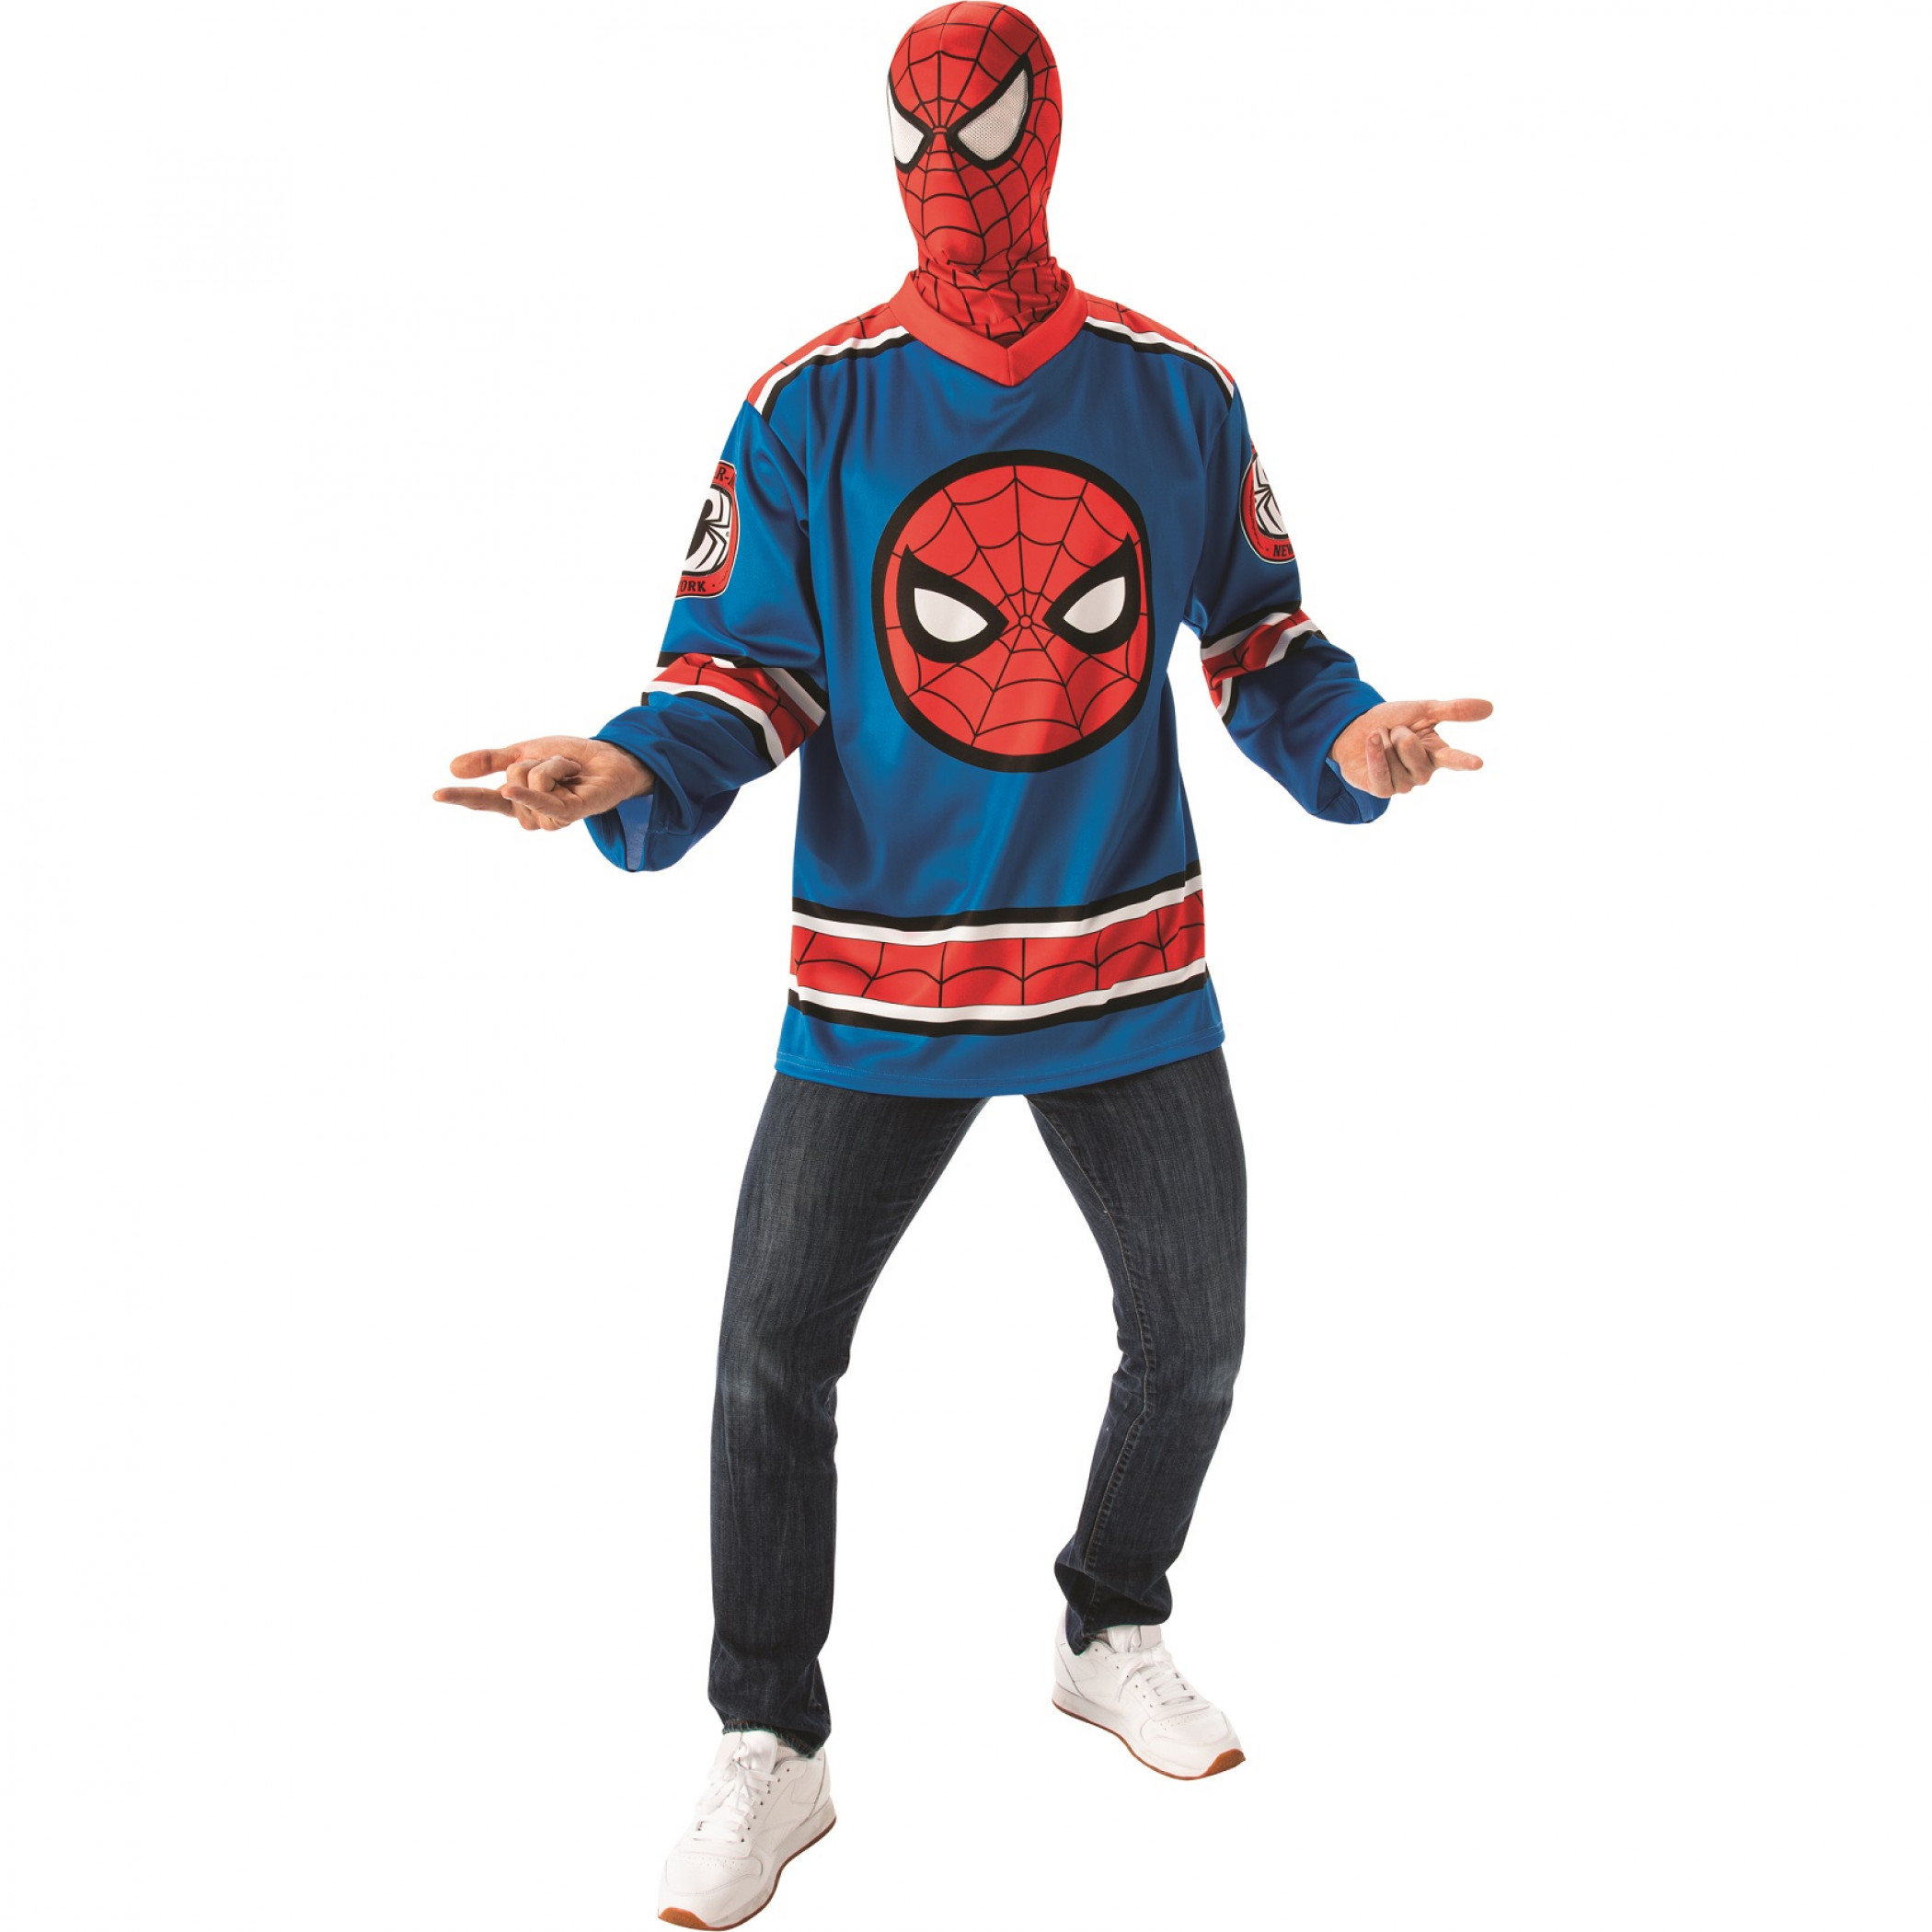 DELUXE SPIDER-MAN JERSEY AND MASK SET FOR MEN